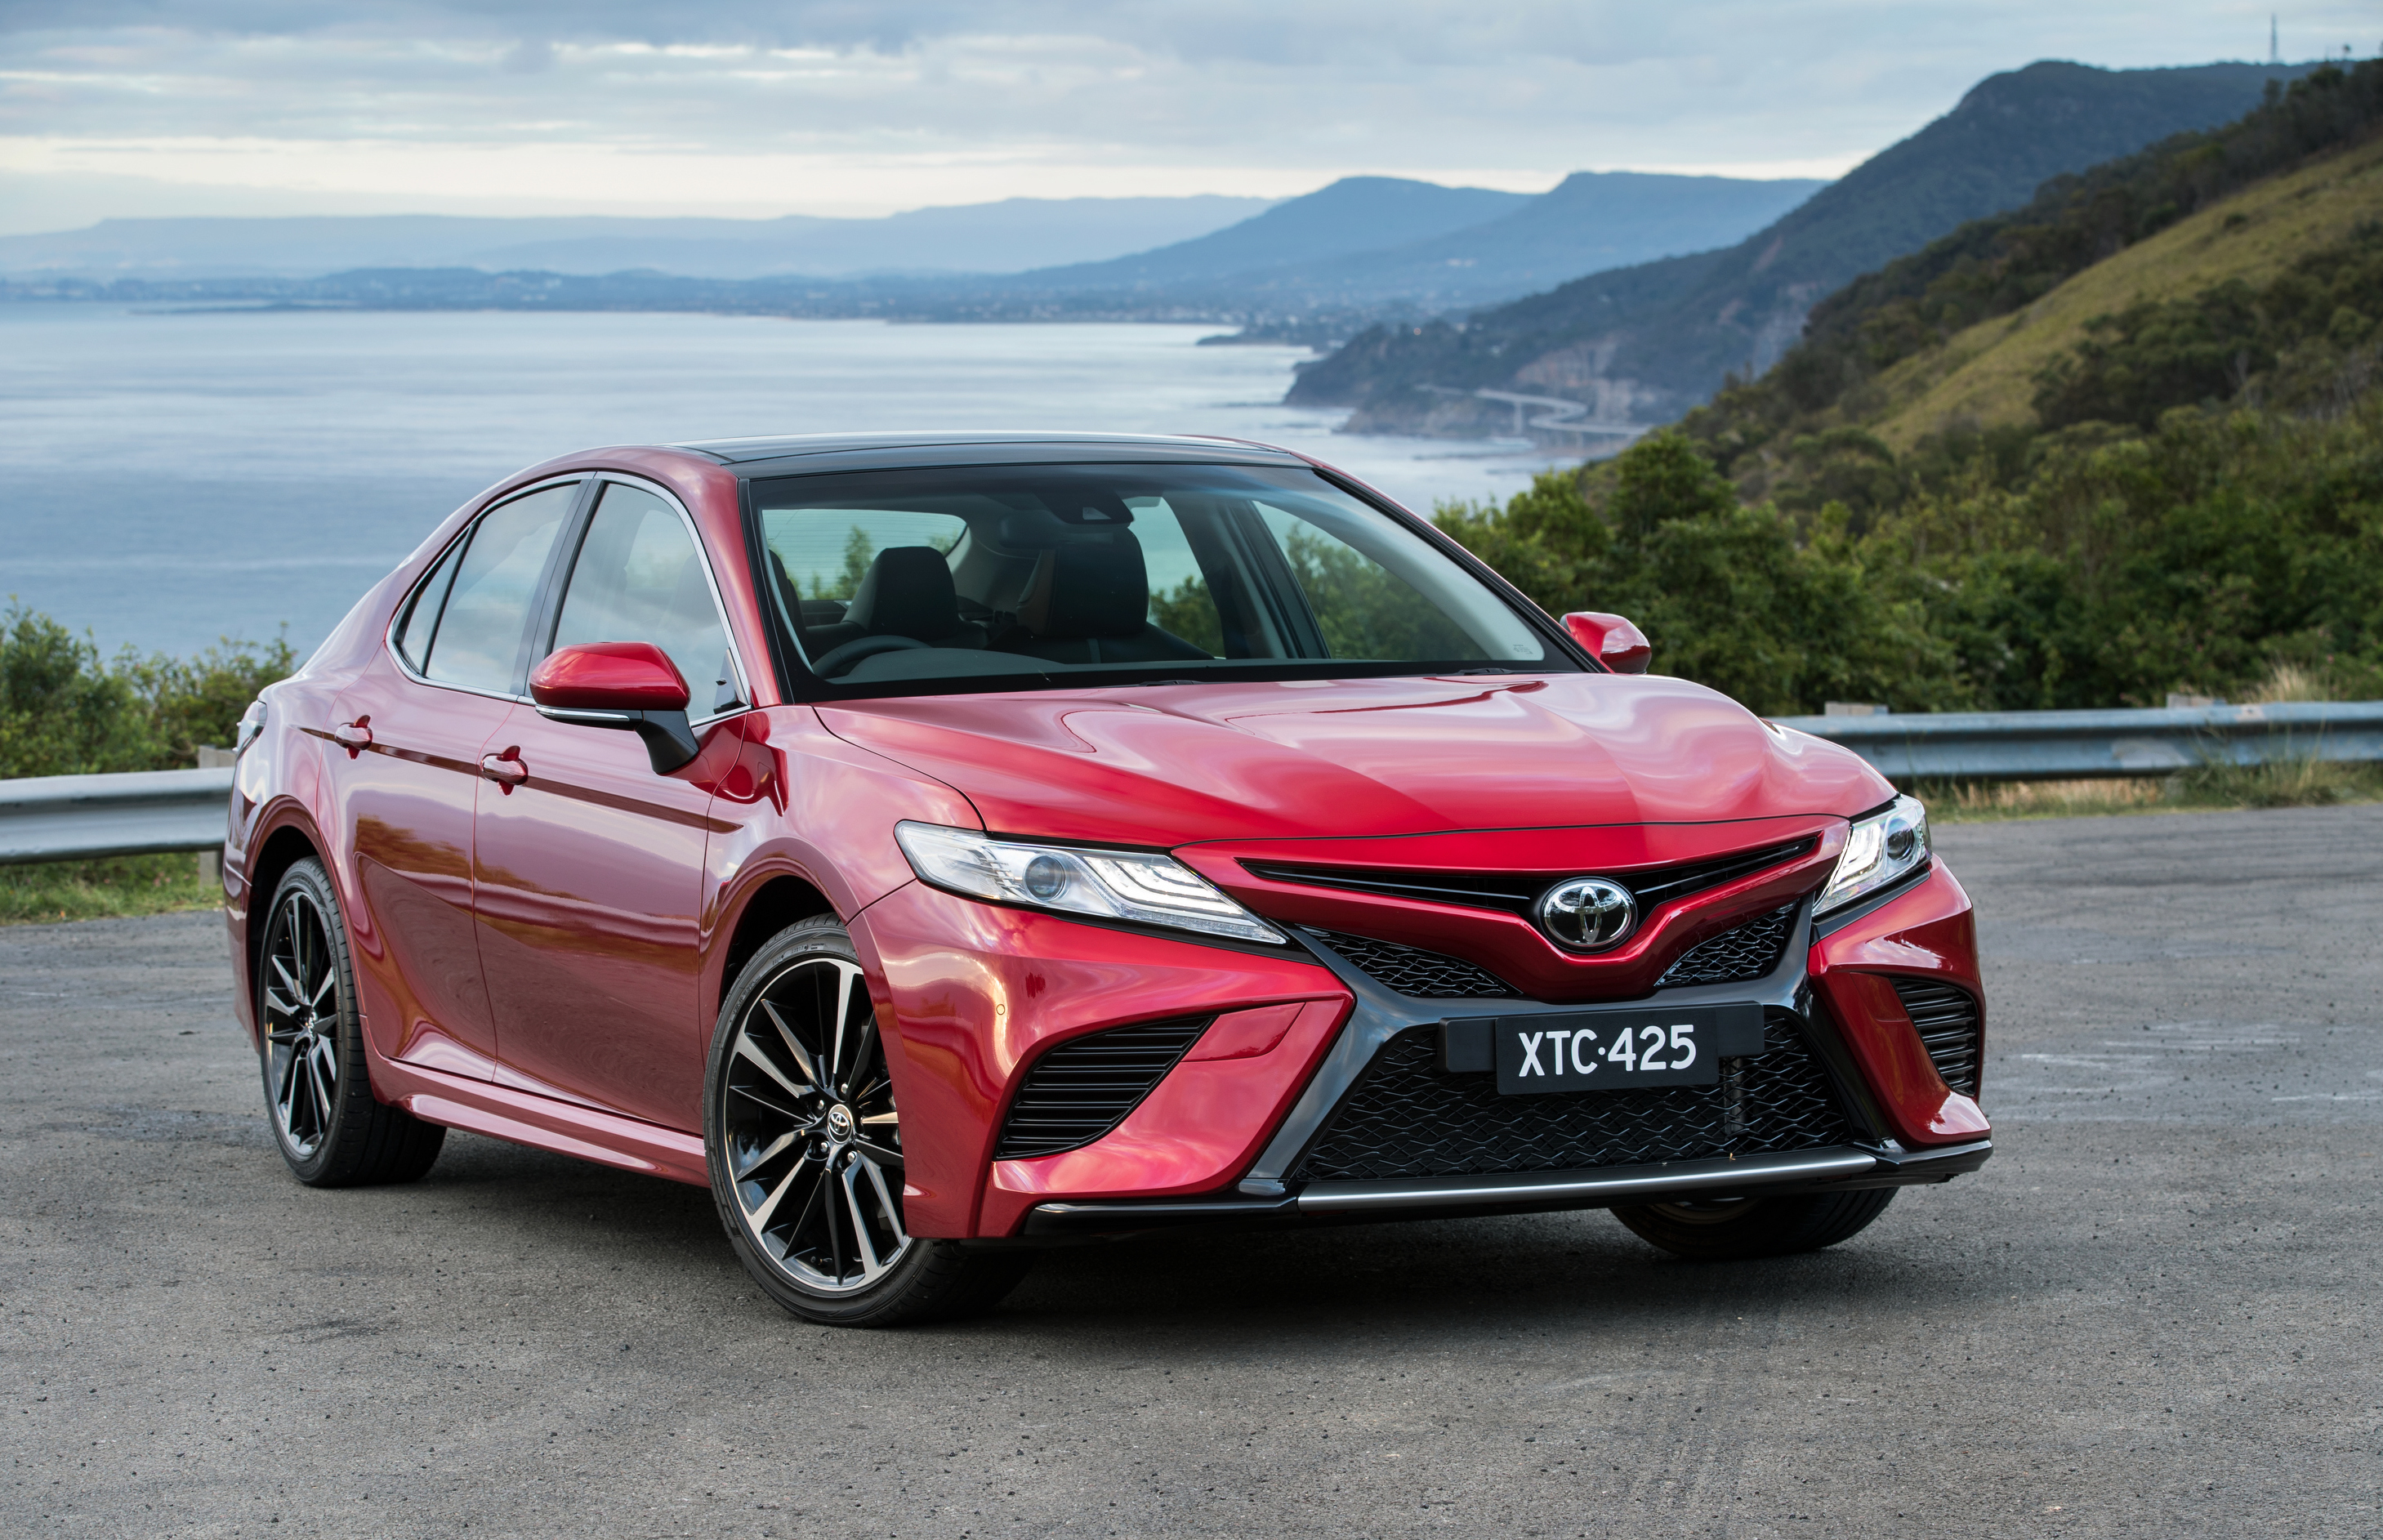 all new toyota camry 2019 indonesia perbedaan grand avanza e dan g 2016 2018 pricing and equipment detailed for